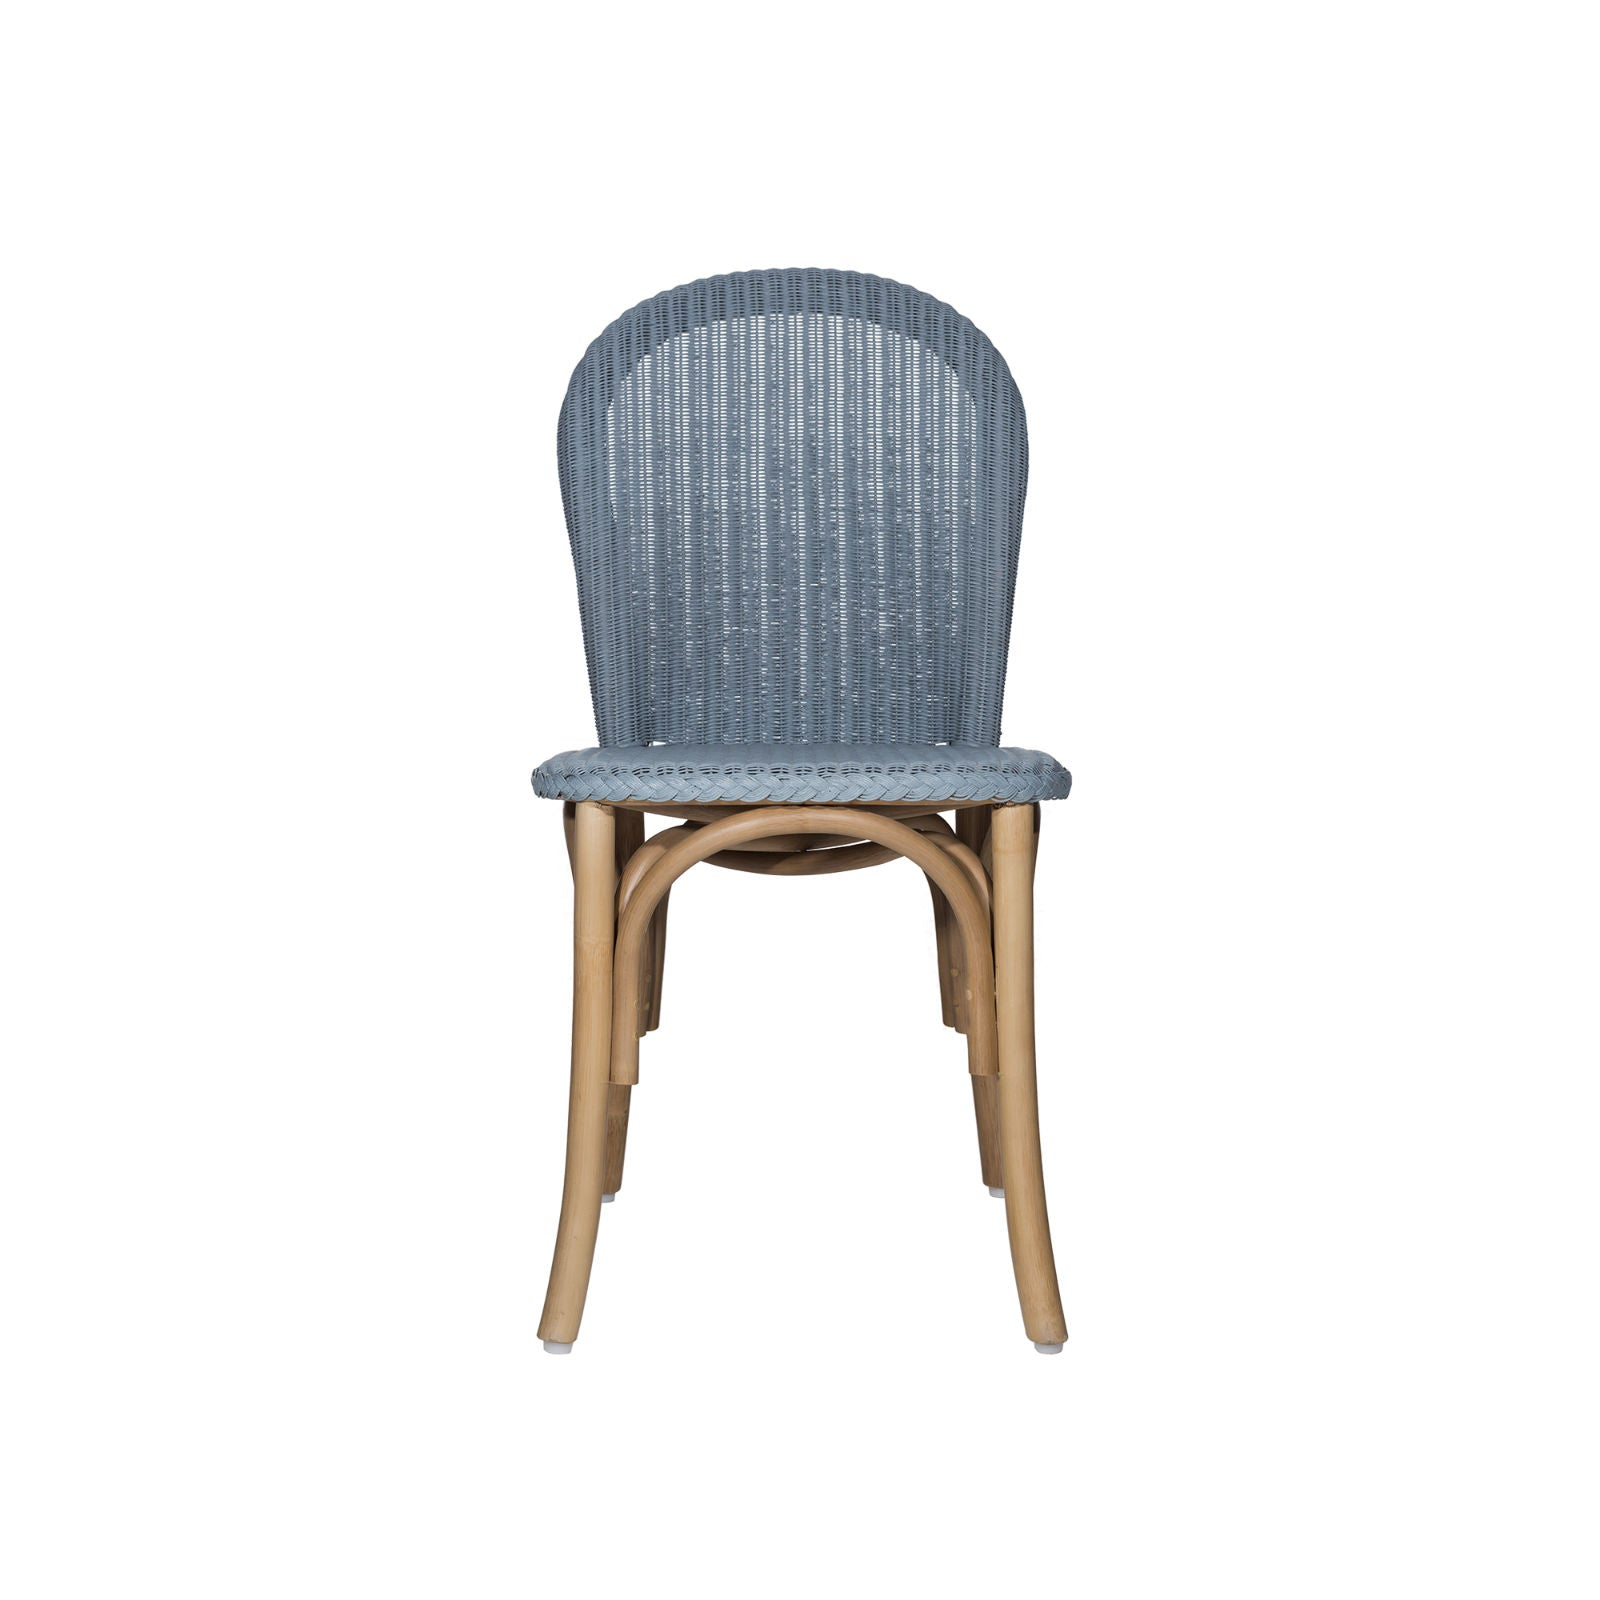 Draper Chair in Blue no. 1